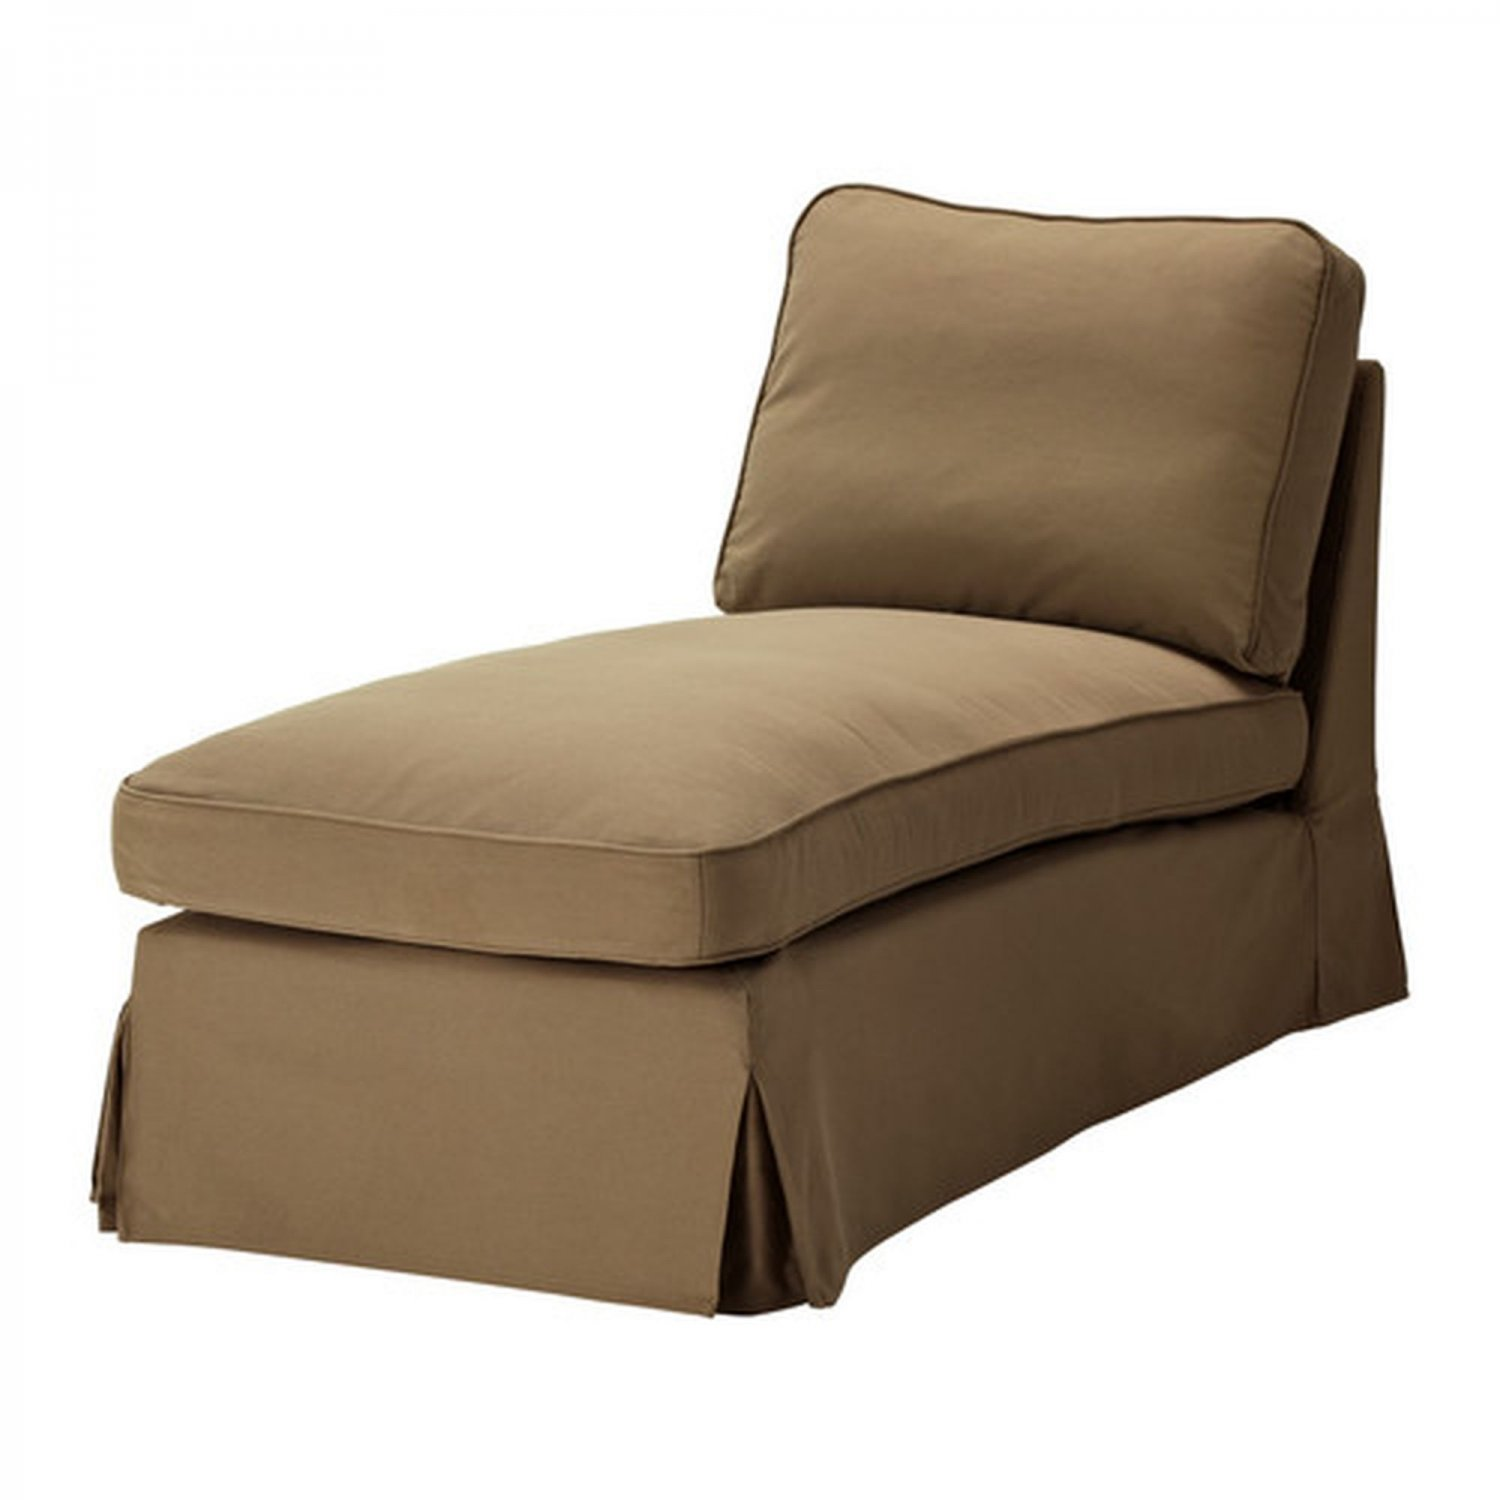 Ikea ektorp free standing chaise cover slipcover idemo for Ikea club chair